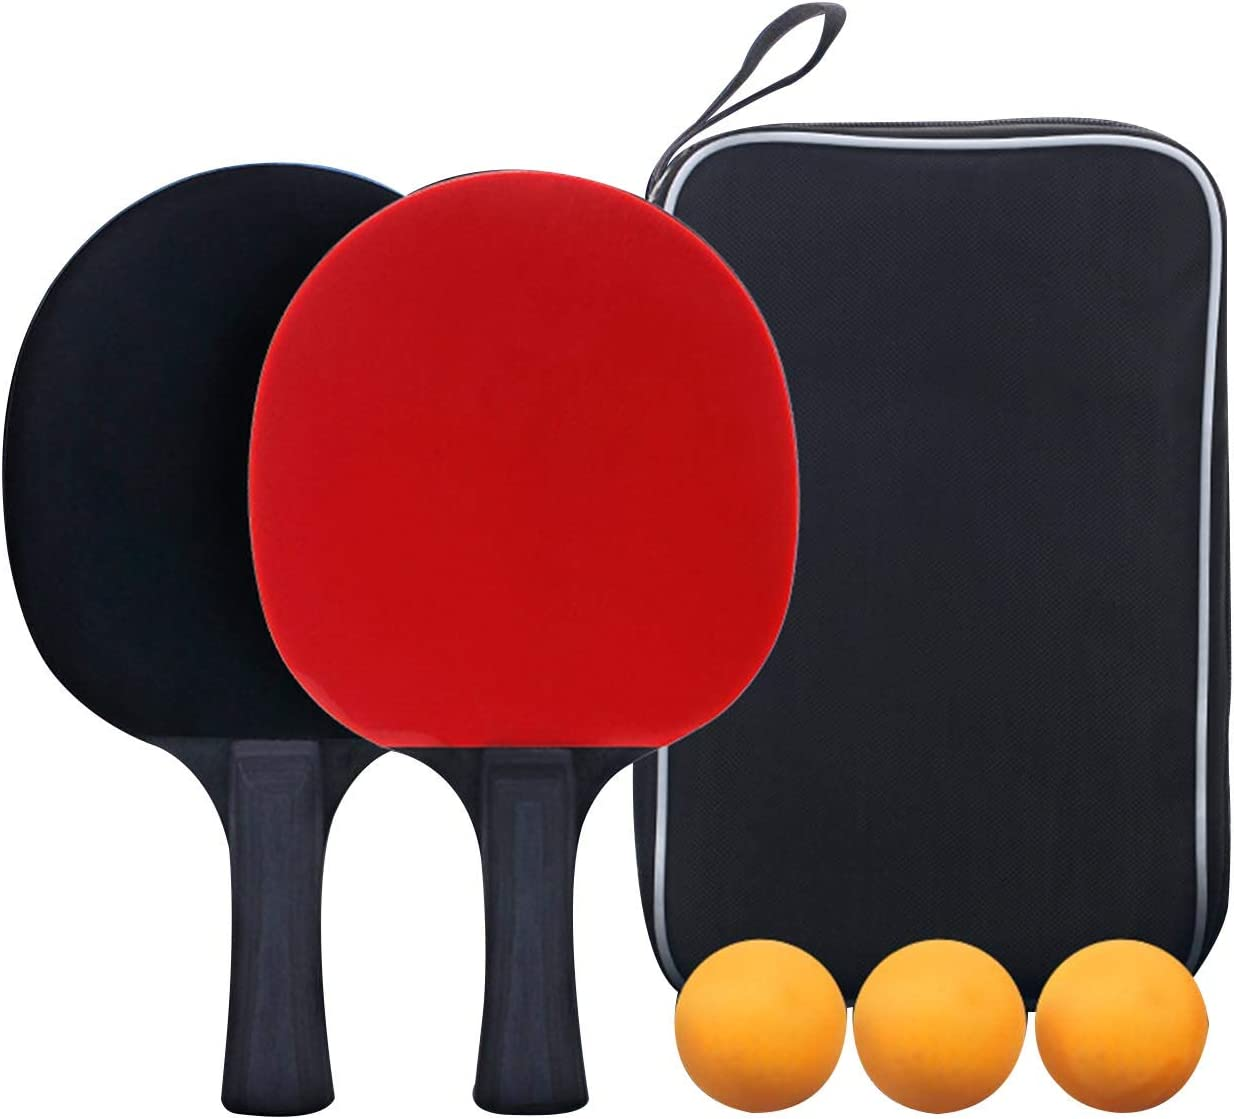 Letuwj Ping Excellence Pong Paddle Set Includes 3 2 Selling and selling Paddles